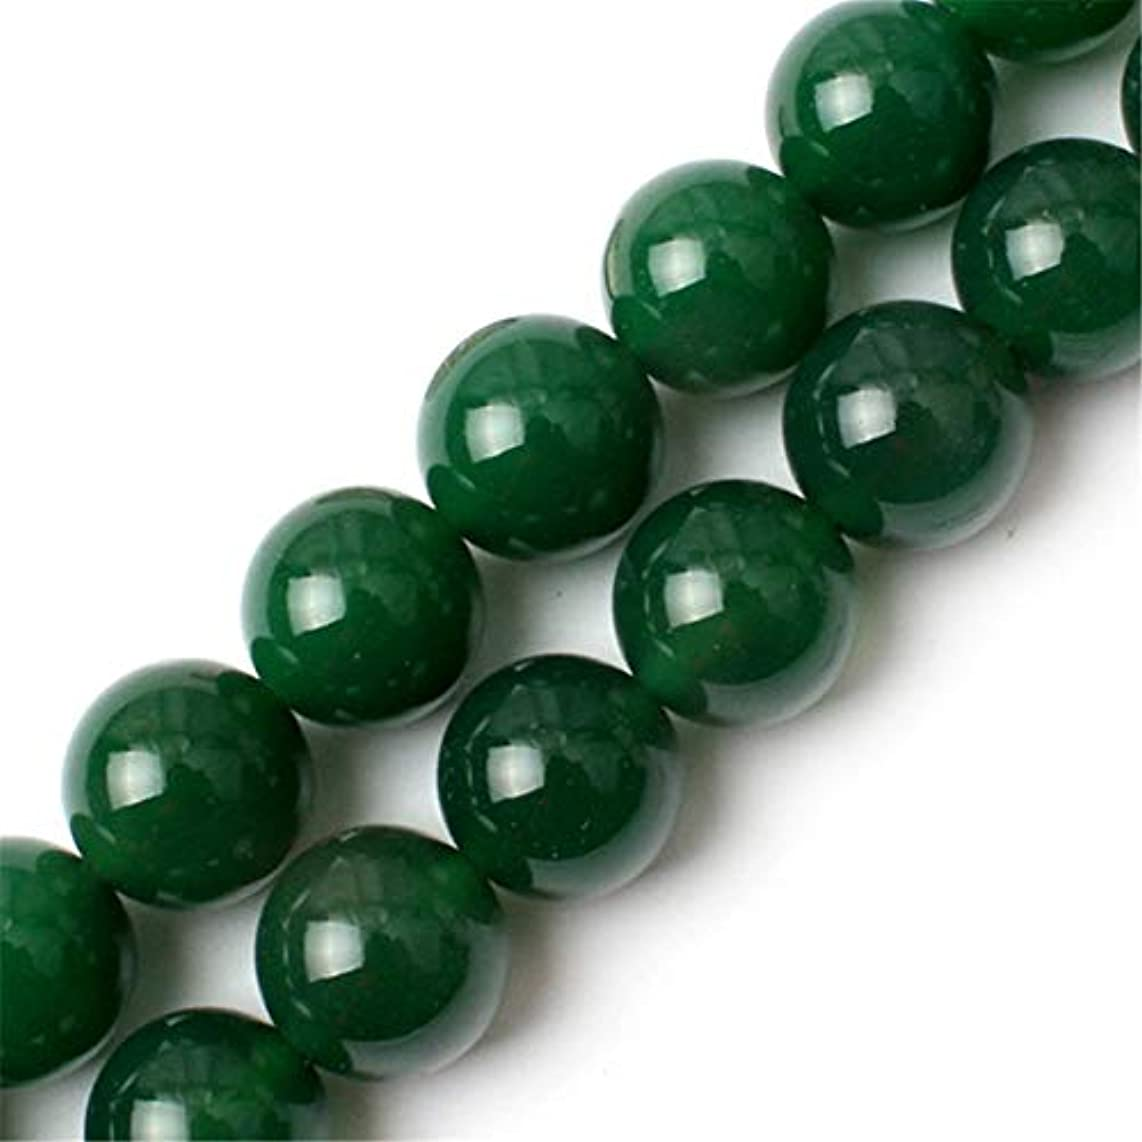 Green Agate Beads for Jewelry Making Natural Semi Precious Gemstone 14mm Round Strand 15